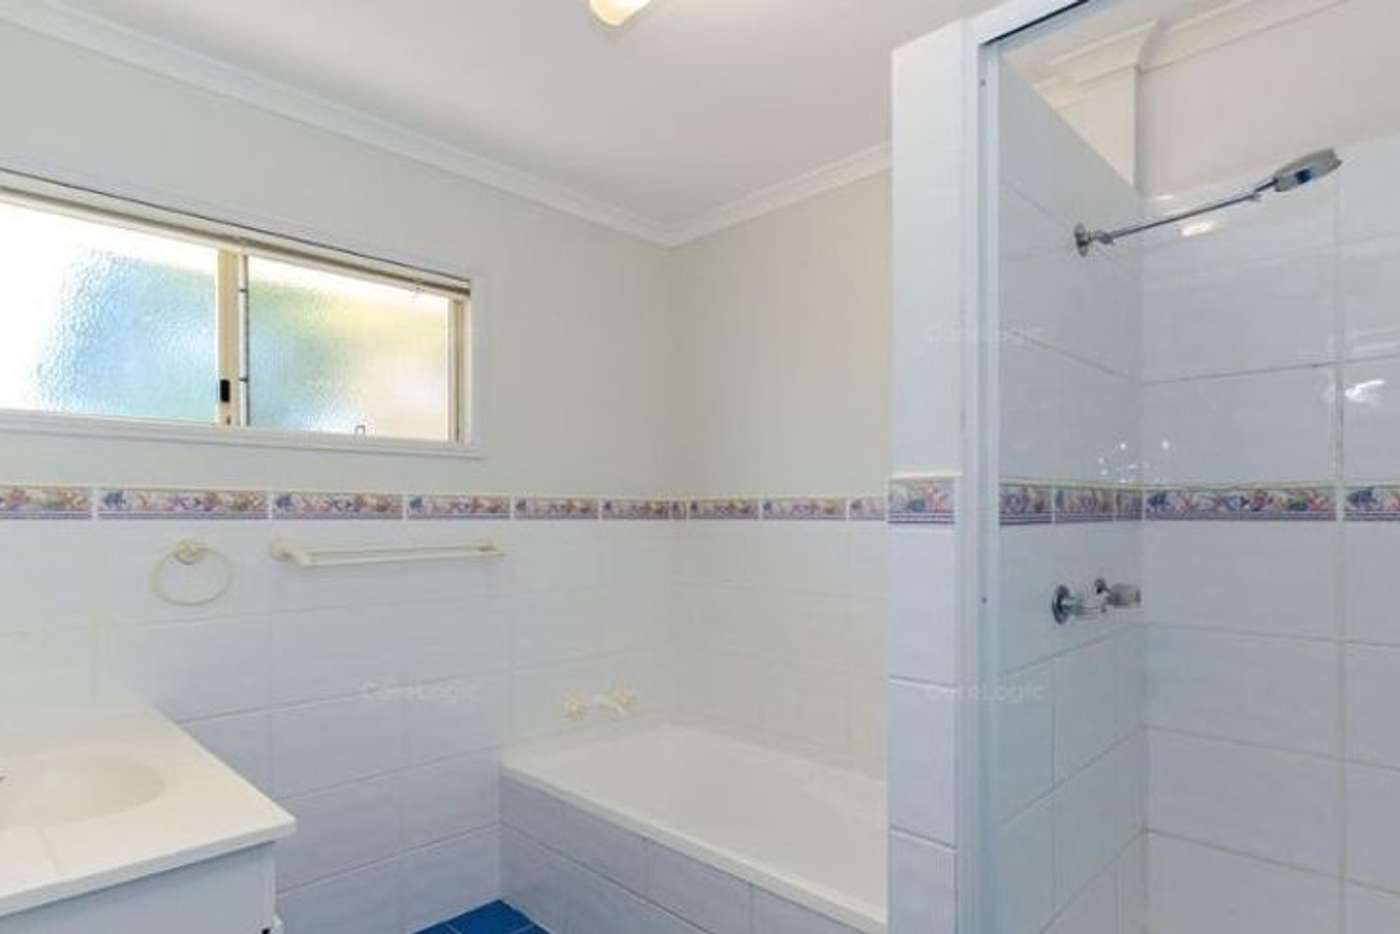 Sixth view of Homely house listing, 23 Pershouse Street, Barney Point QLD 4680